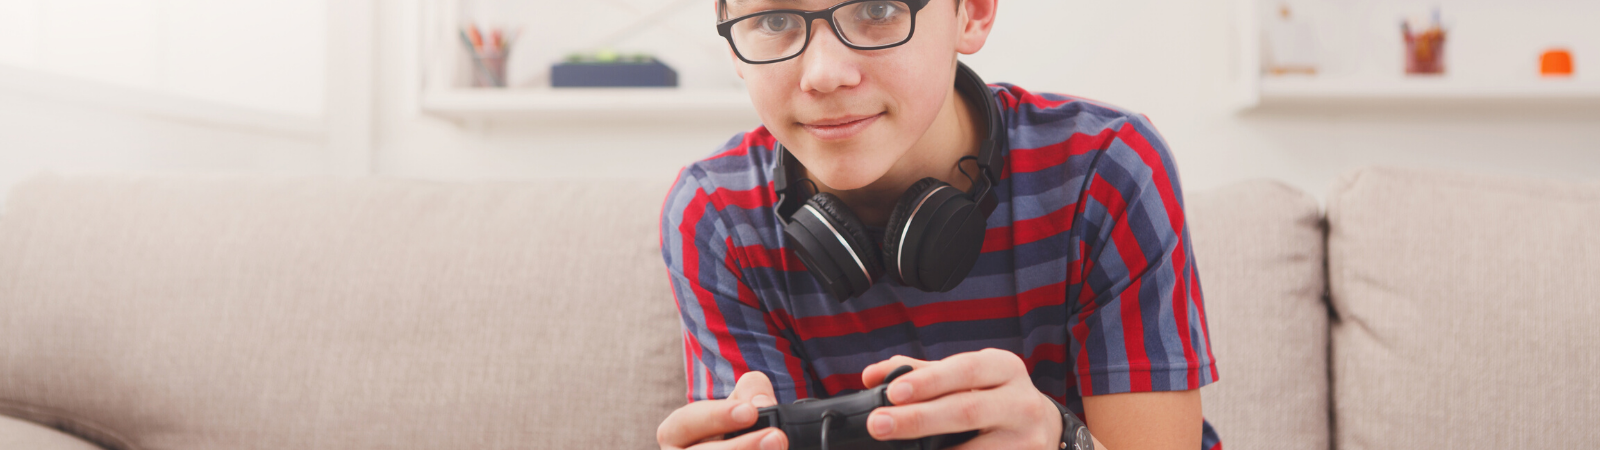 Child playing video games on the couch